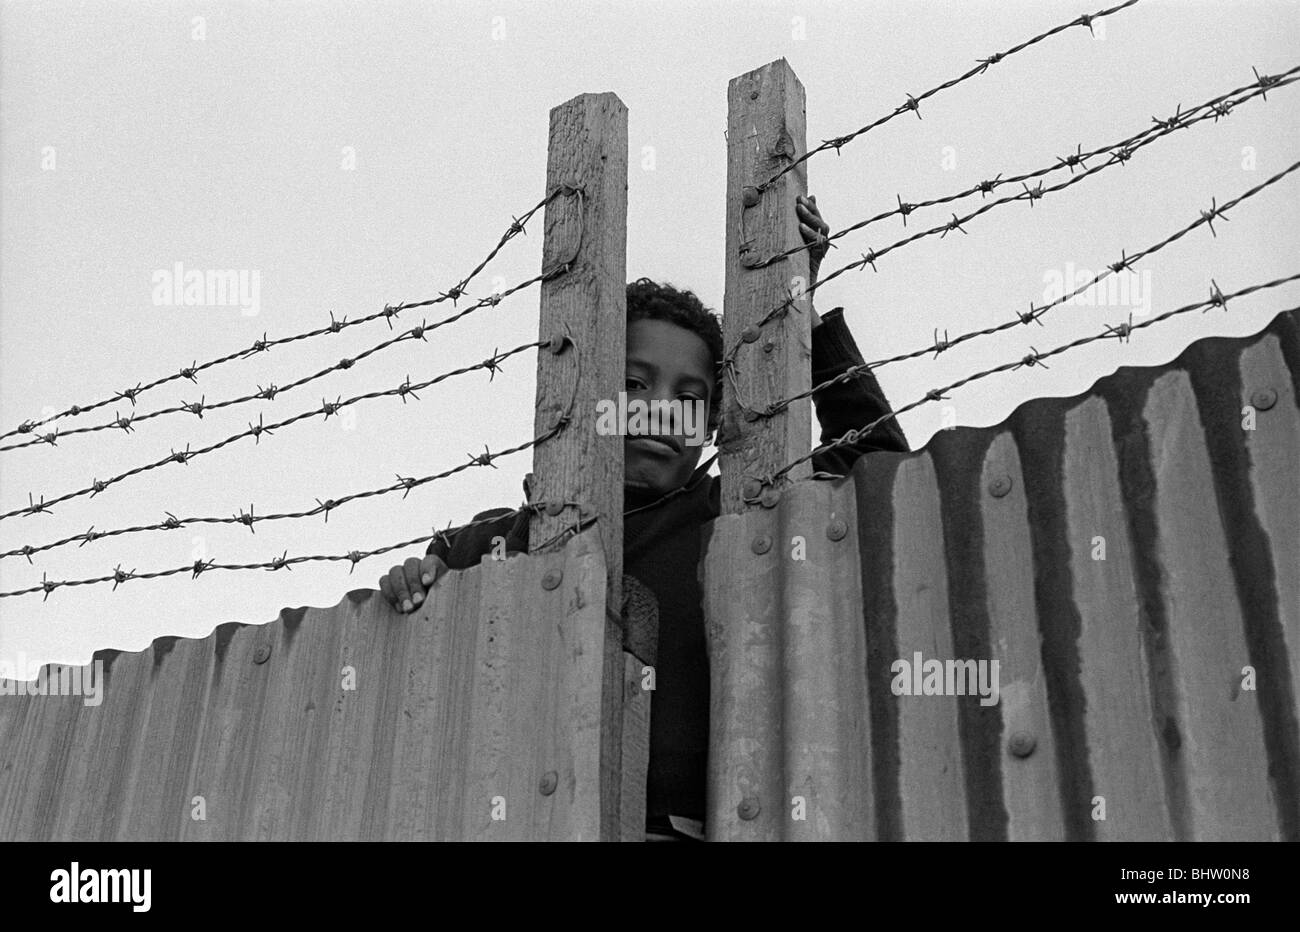 Boy in a wire, May 1980 at Brixton, South London UK. - Stock Image